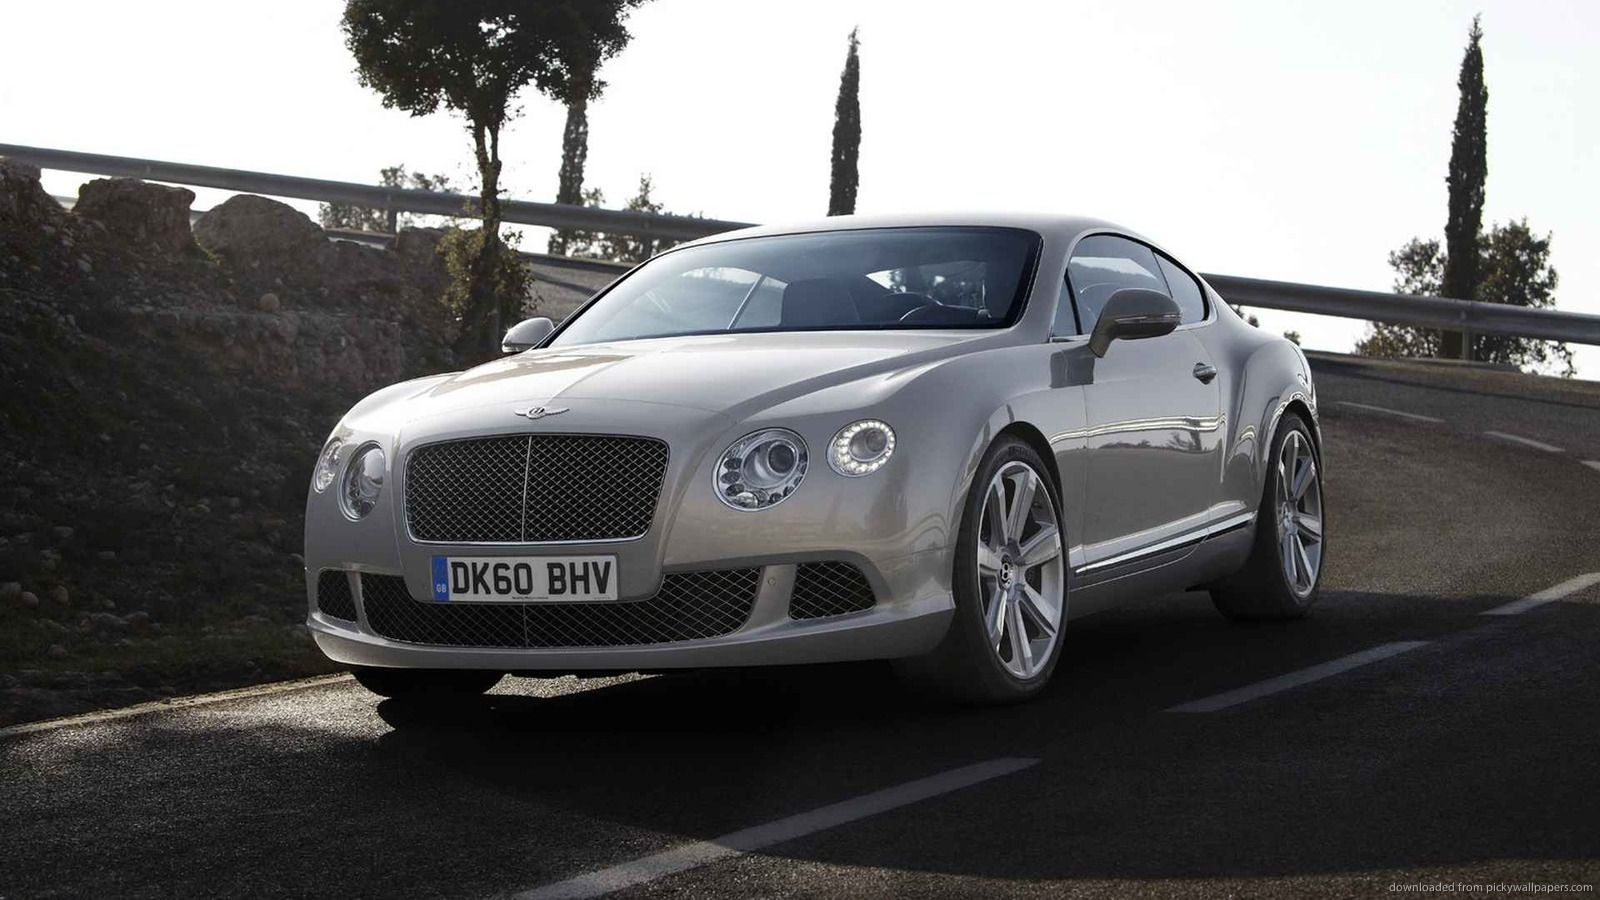 New-Bentley-Continental-GT-wallpaper-wp427874